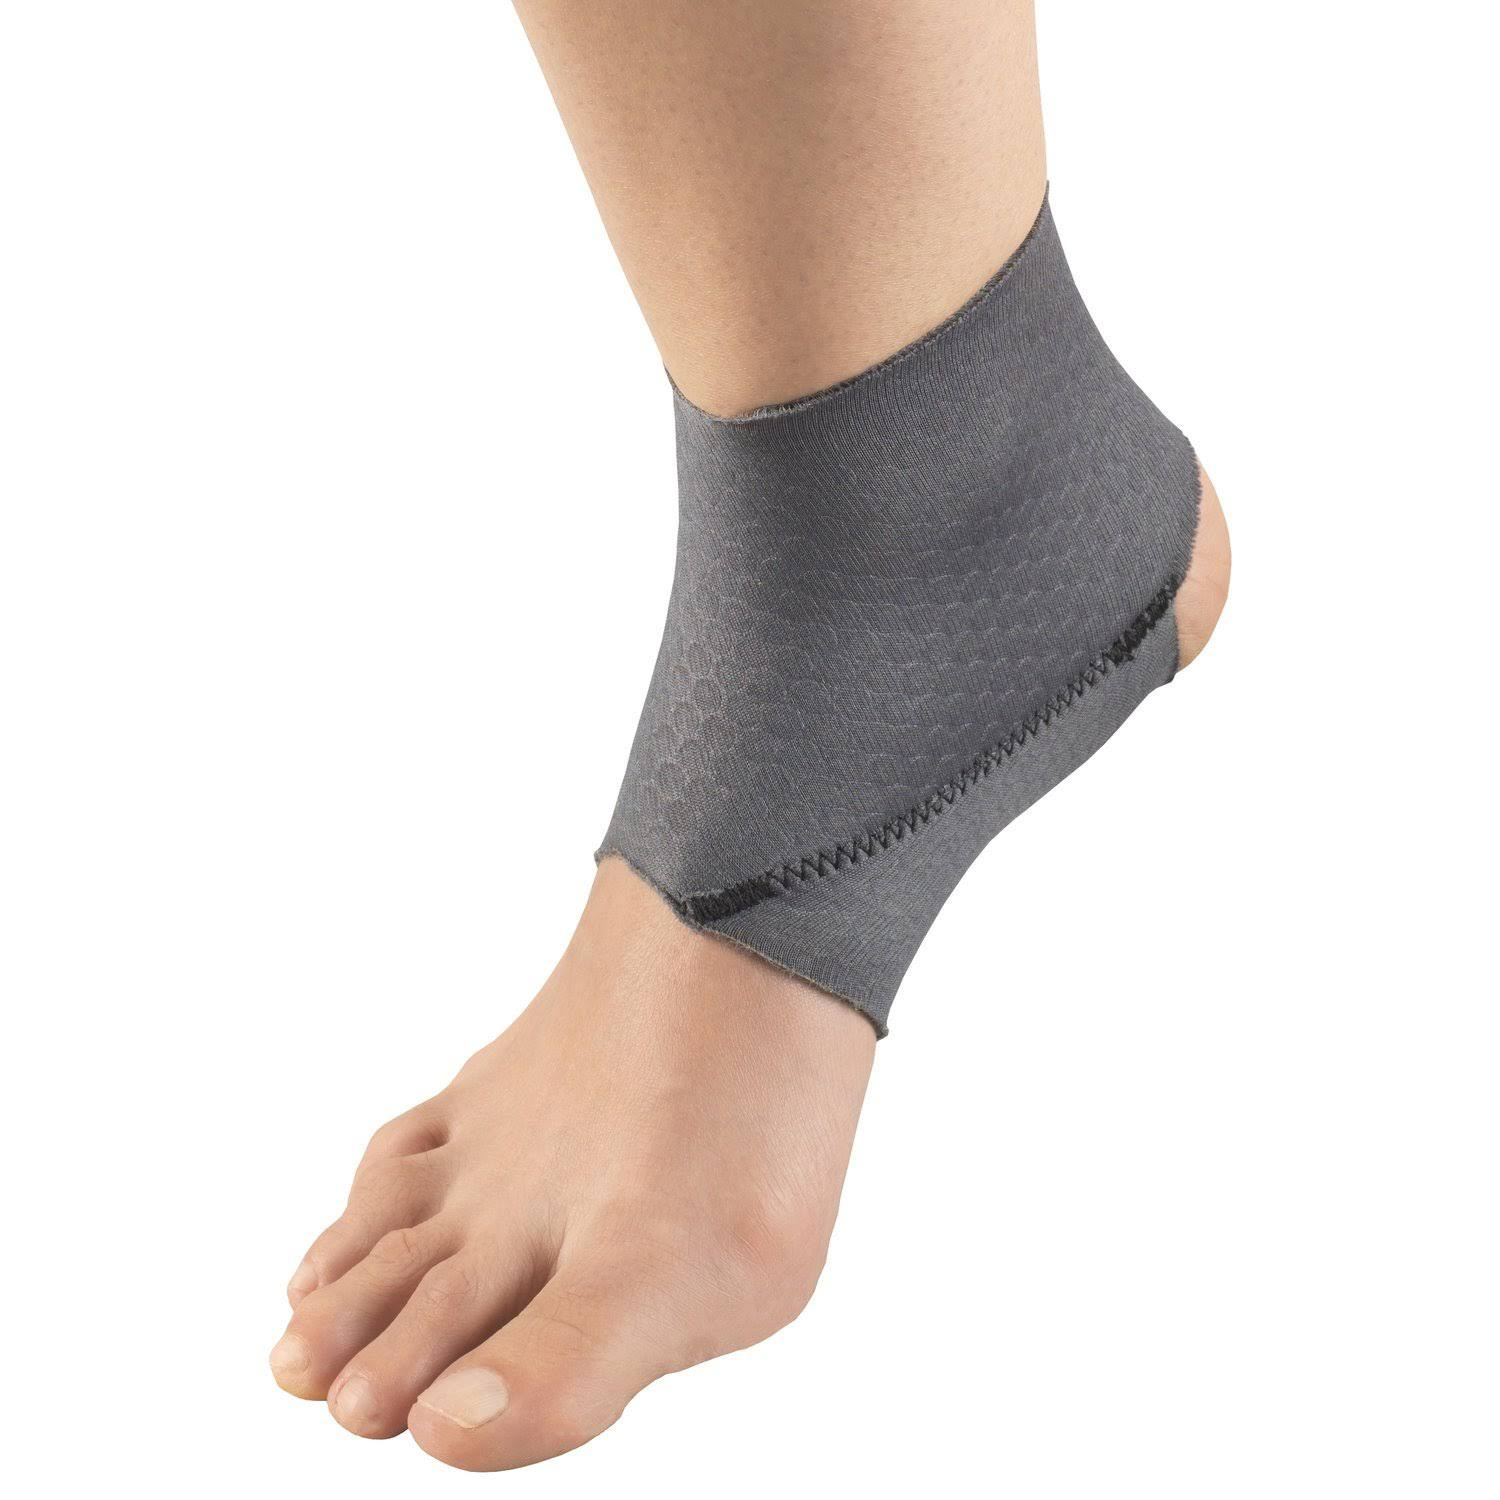 Champion Ankle Brace - Adjustable Support, Airmesh Grey Fabric